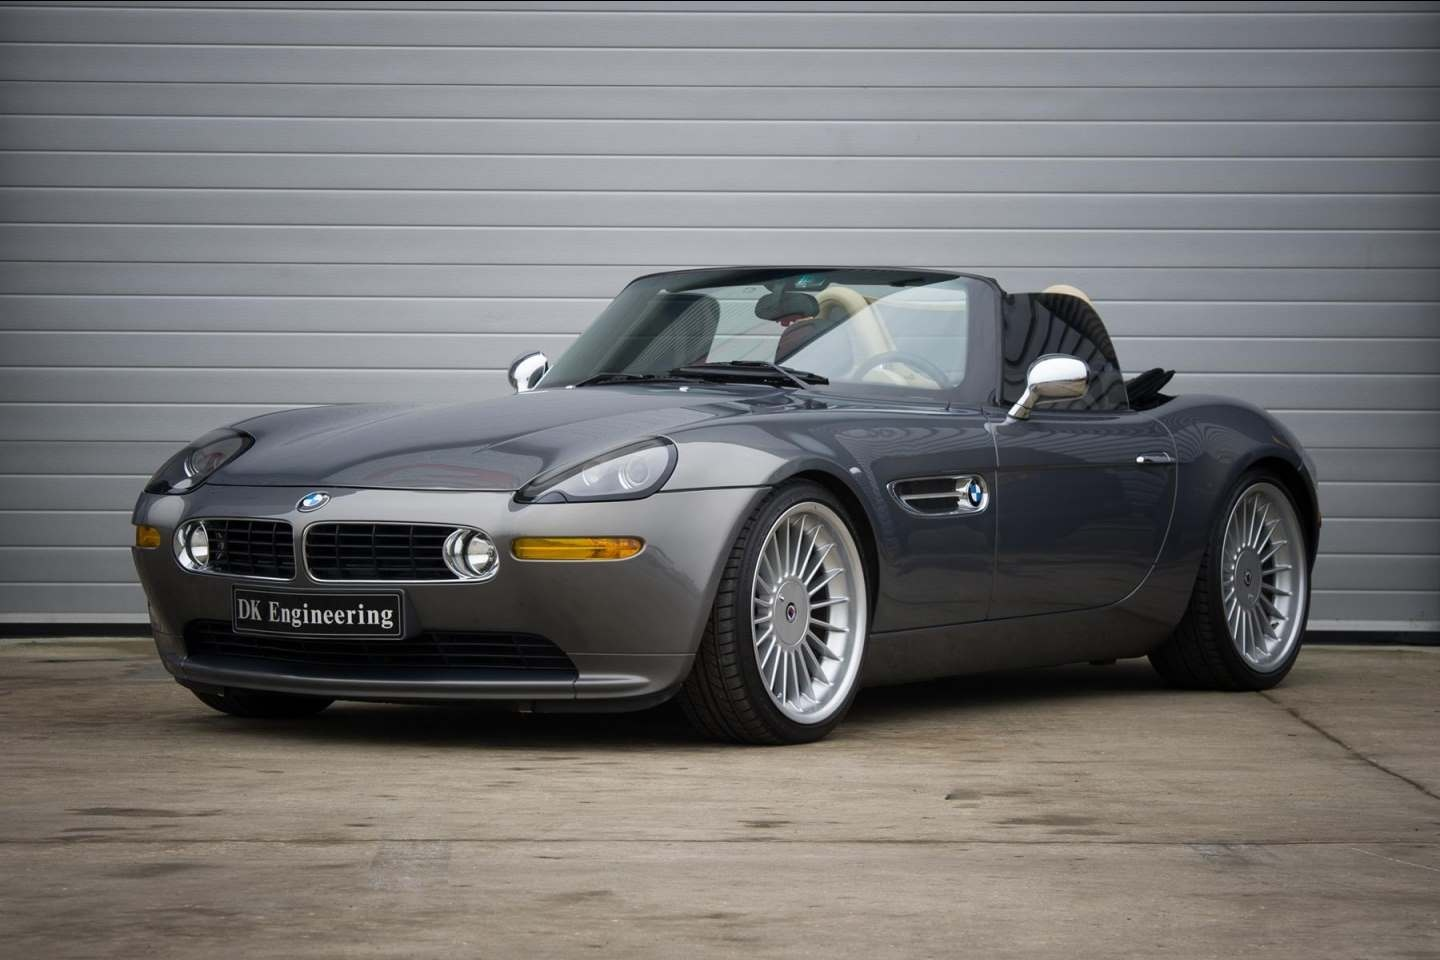 bmw z8 roadster for sale vehicle sales dk engineering. Black Bedroom Furniture Sets. Home Design Ideas